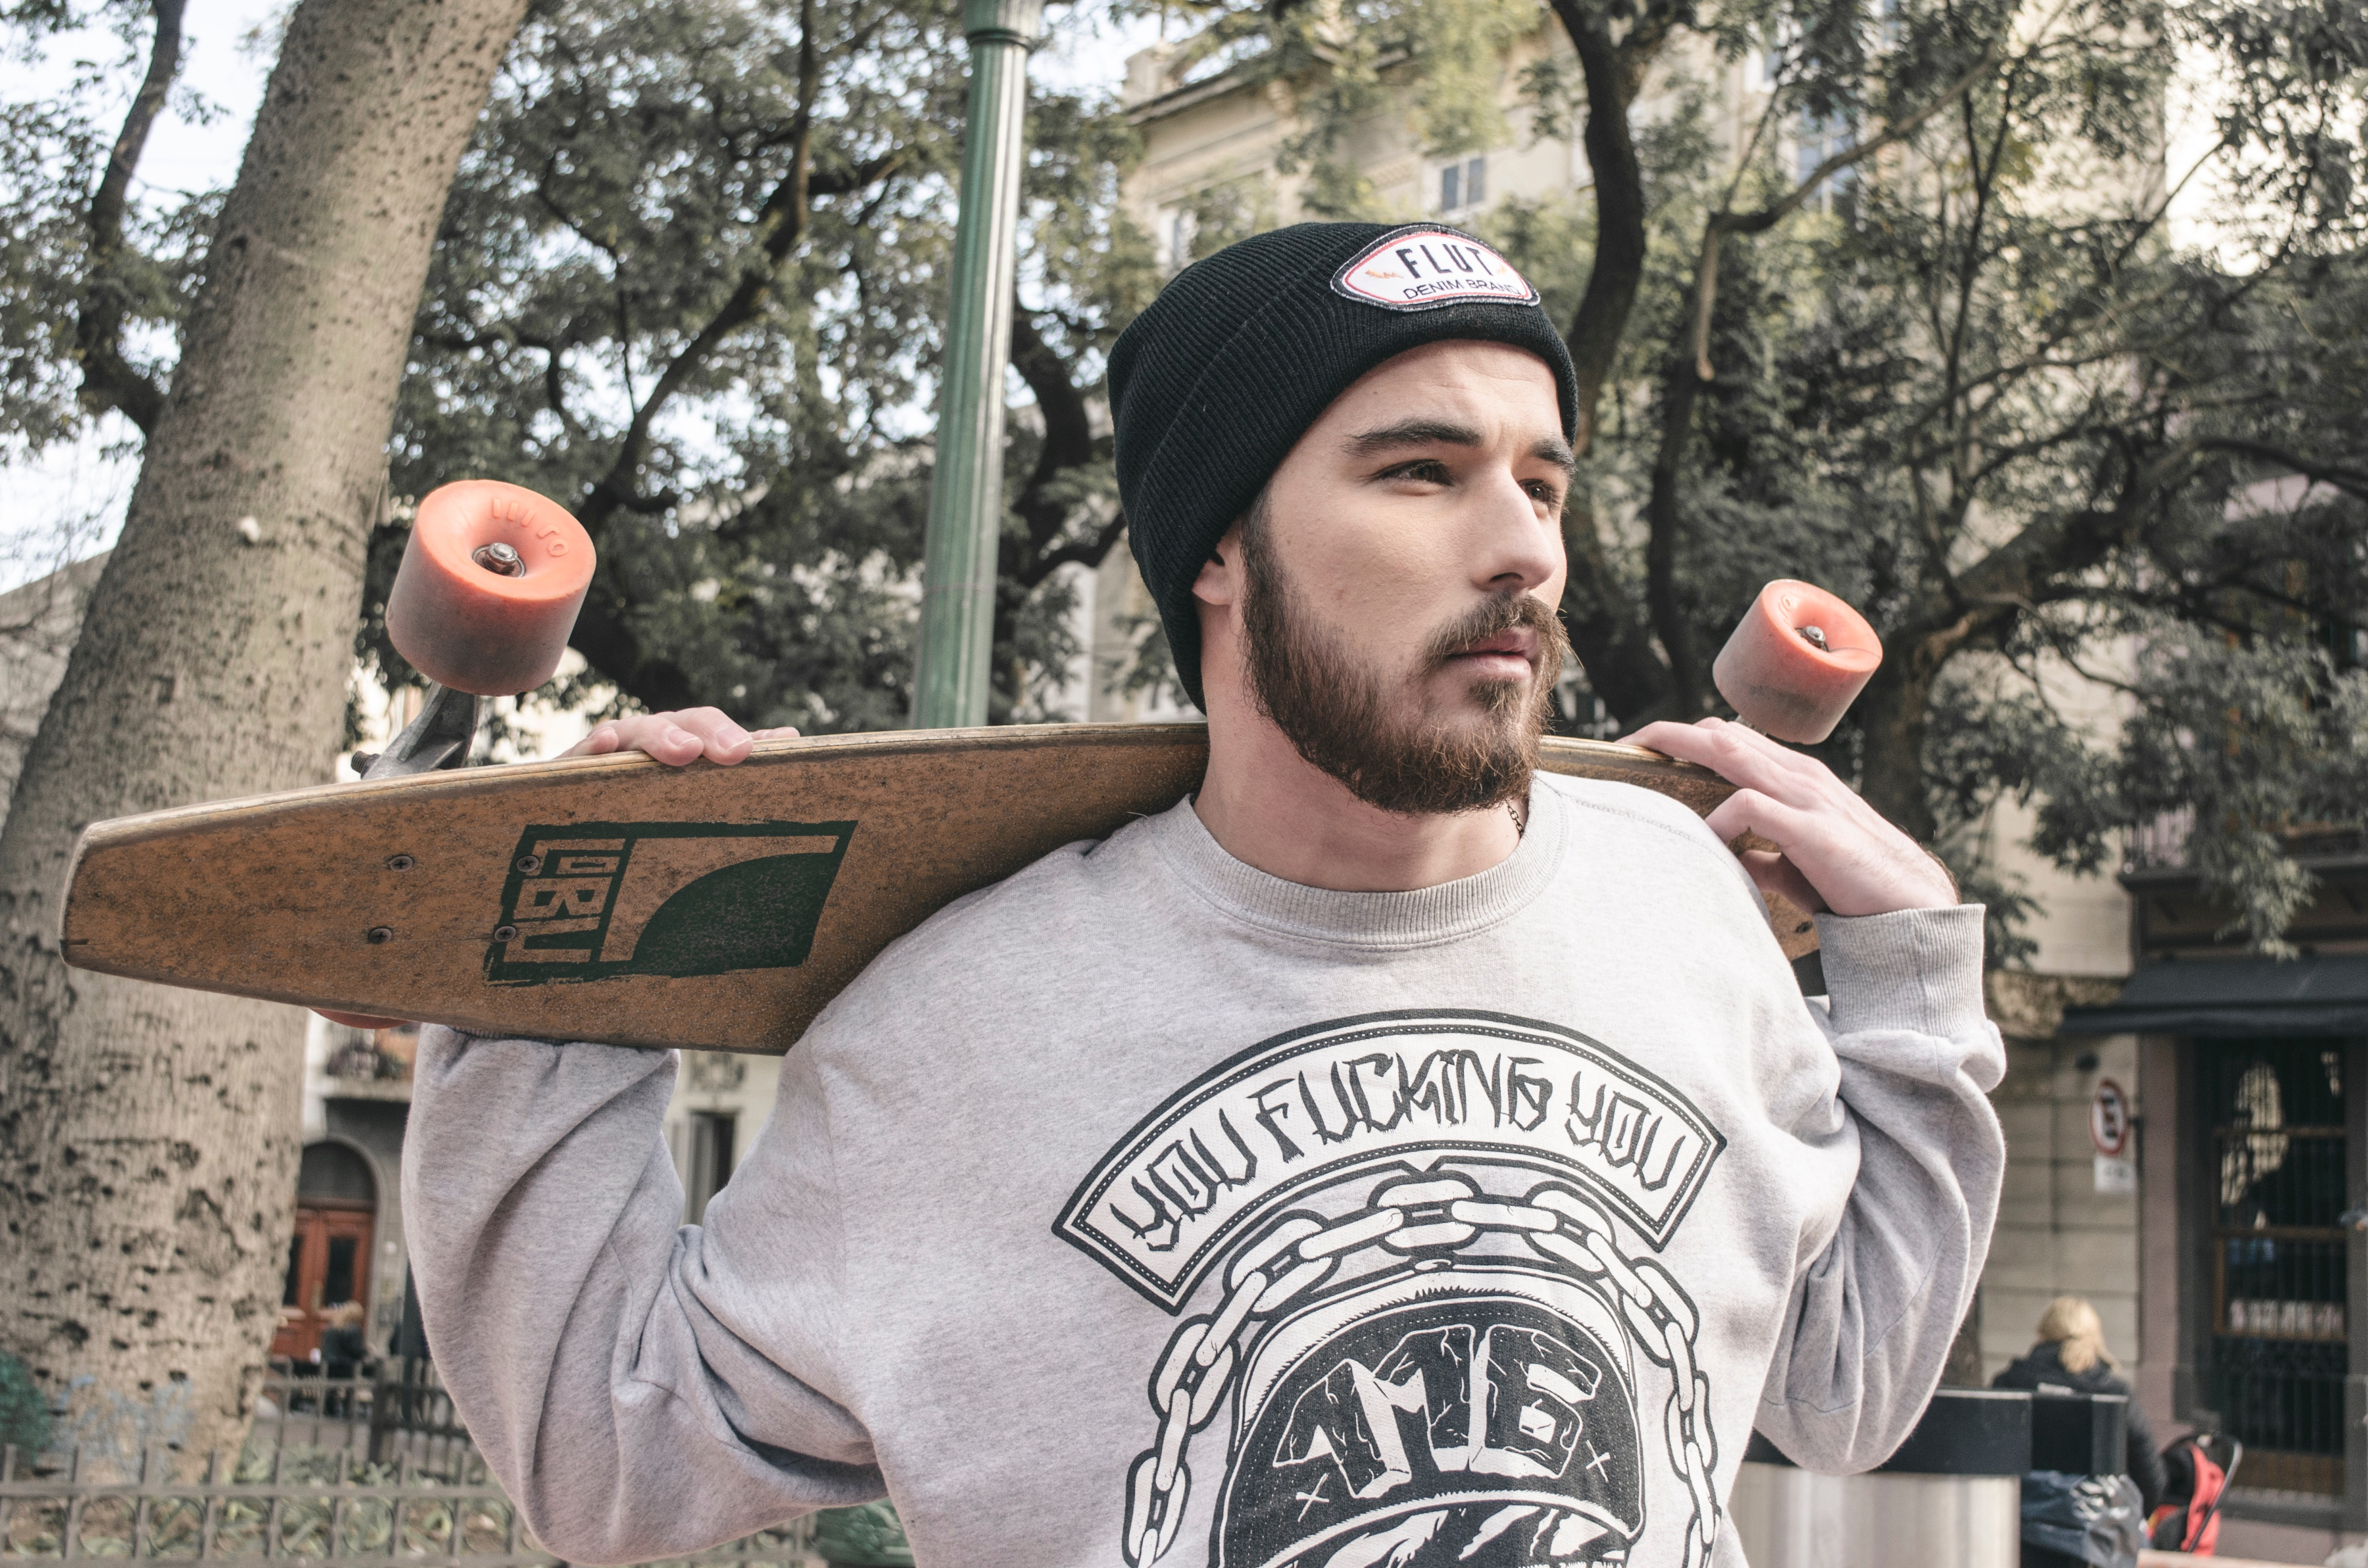 Photography of a Man Holding Longboard, Adult, Photoshoot, Wear, Urban, HQ Photo